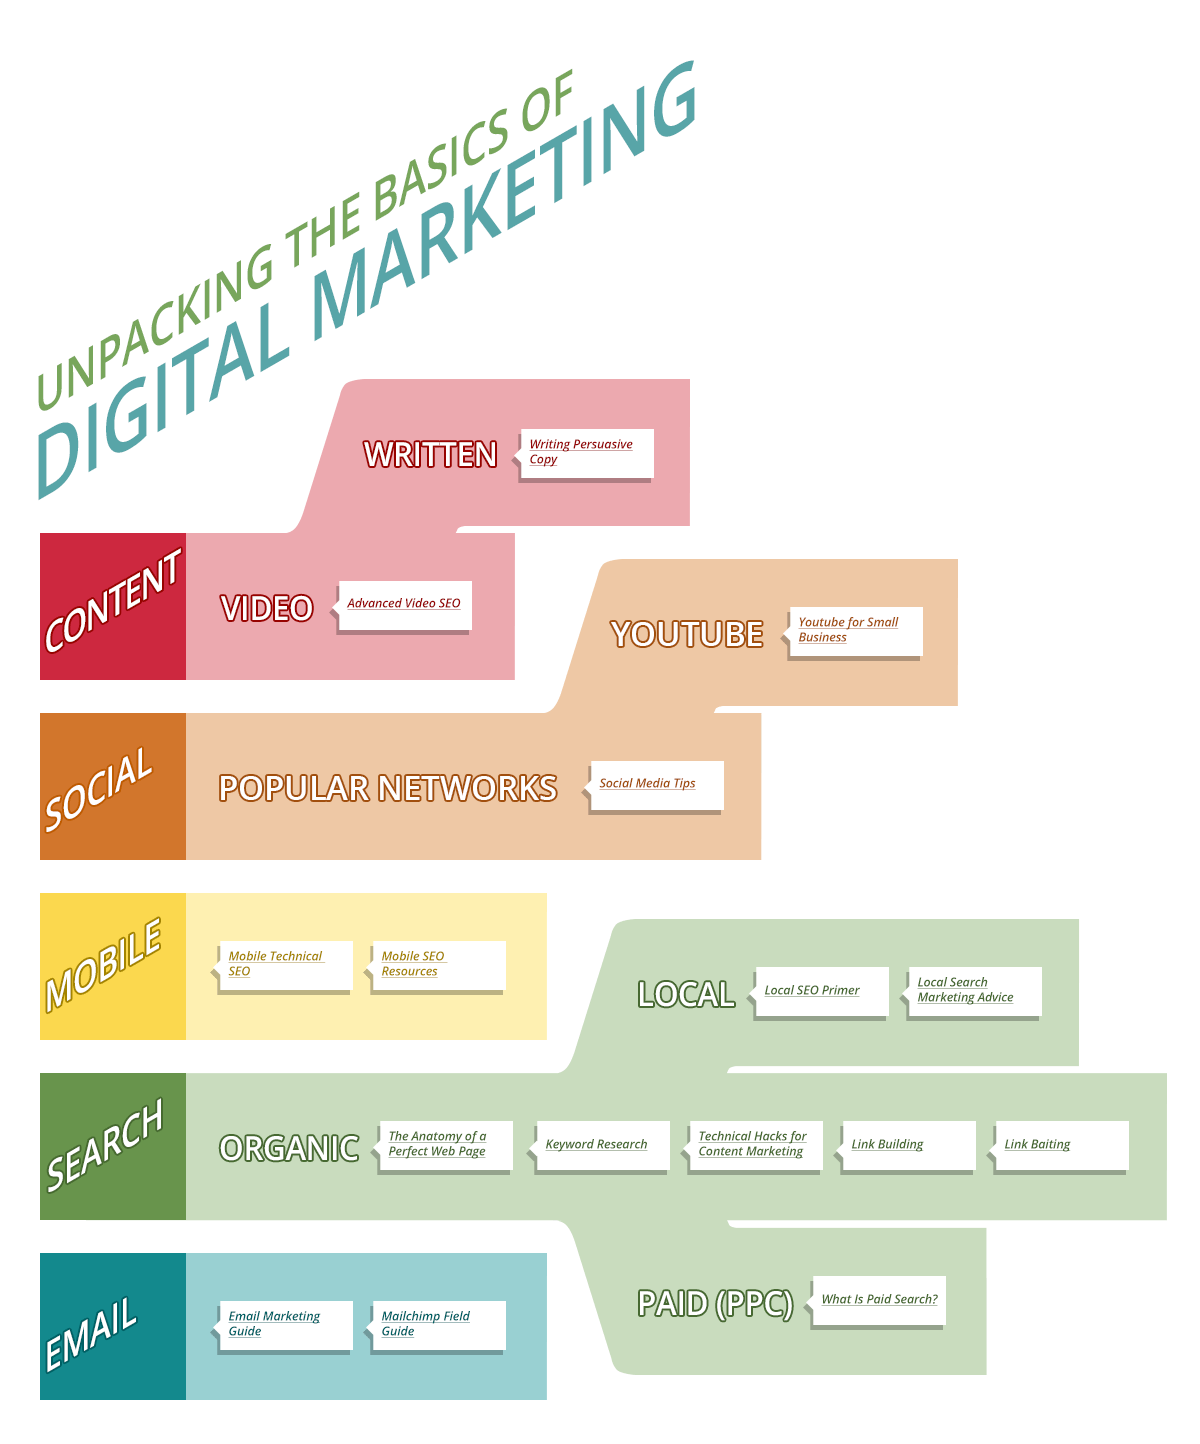 Digital Marketing for Dummies-Infographic